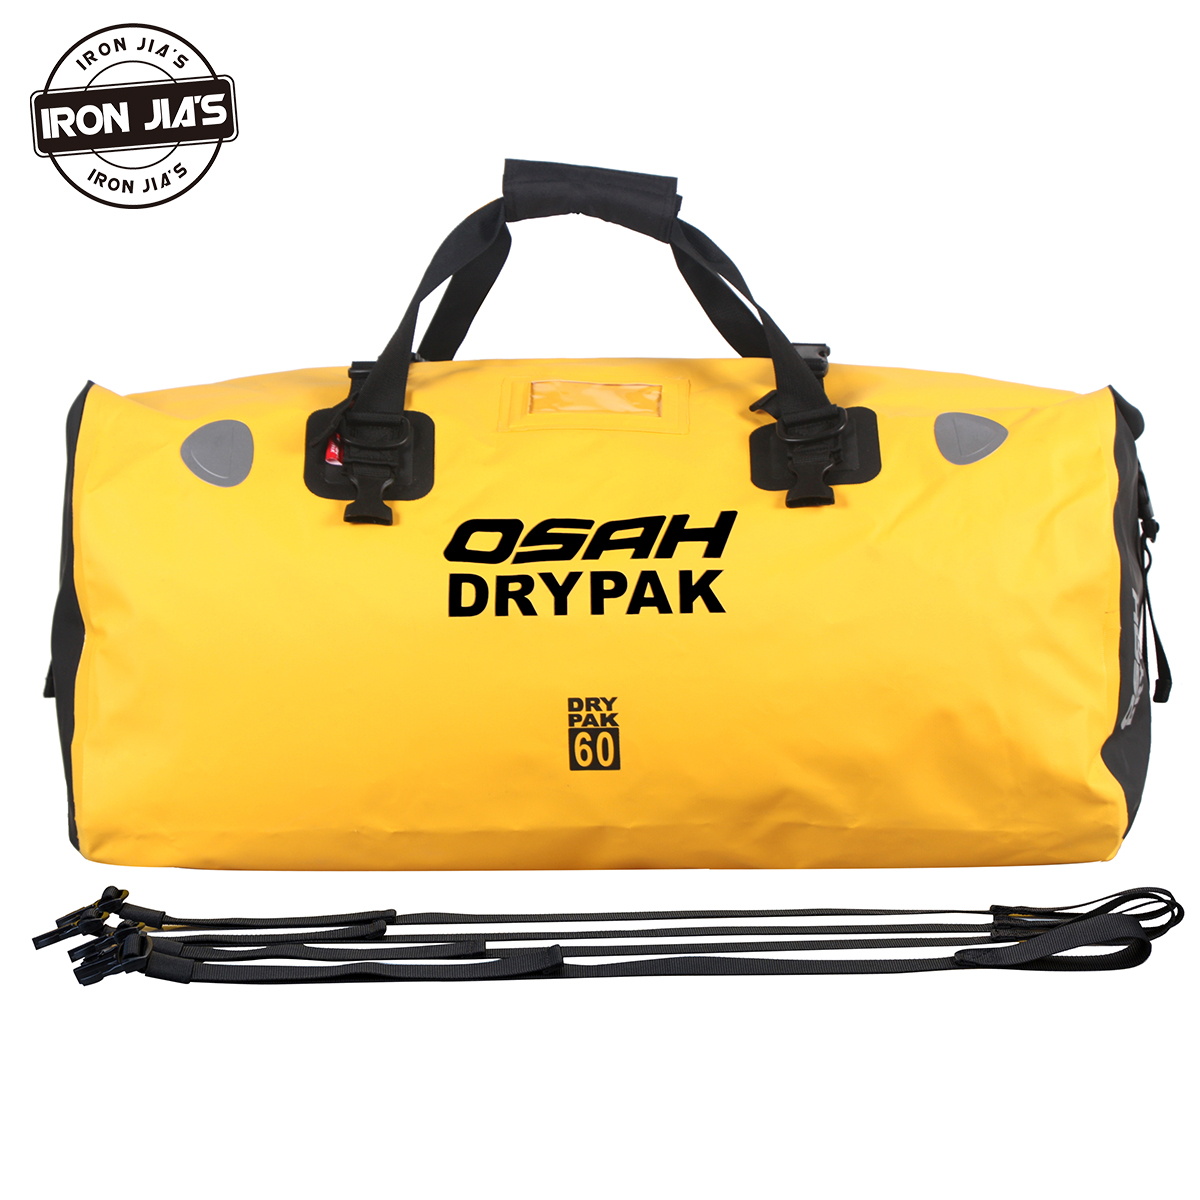 OSAH Drypak Waterproof Dry Bag Pack Sack Swimming Rafting Kayaking River Trekking Floating Water Resistance Bag